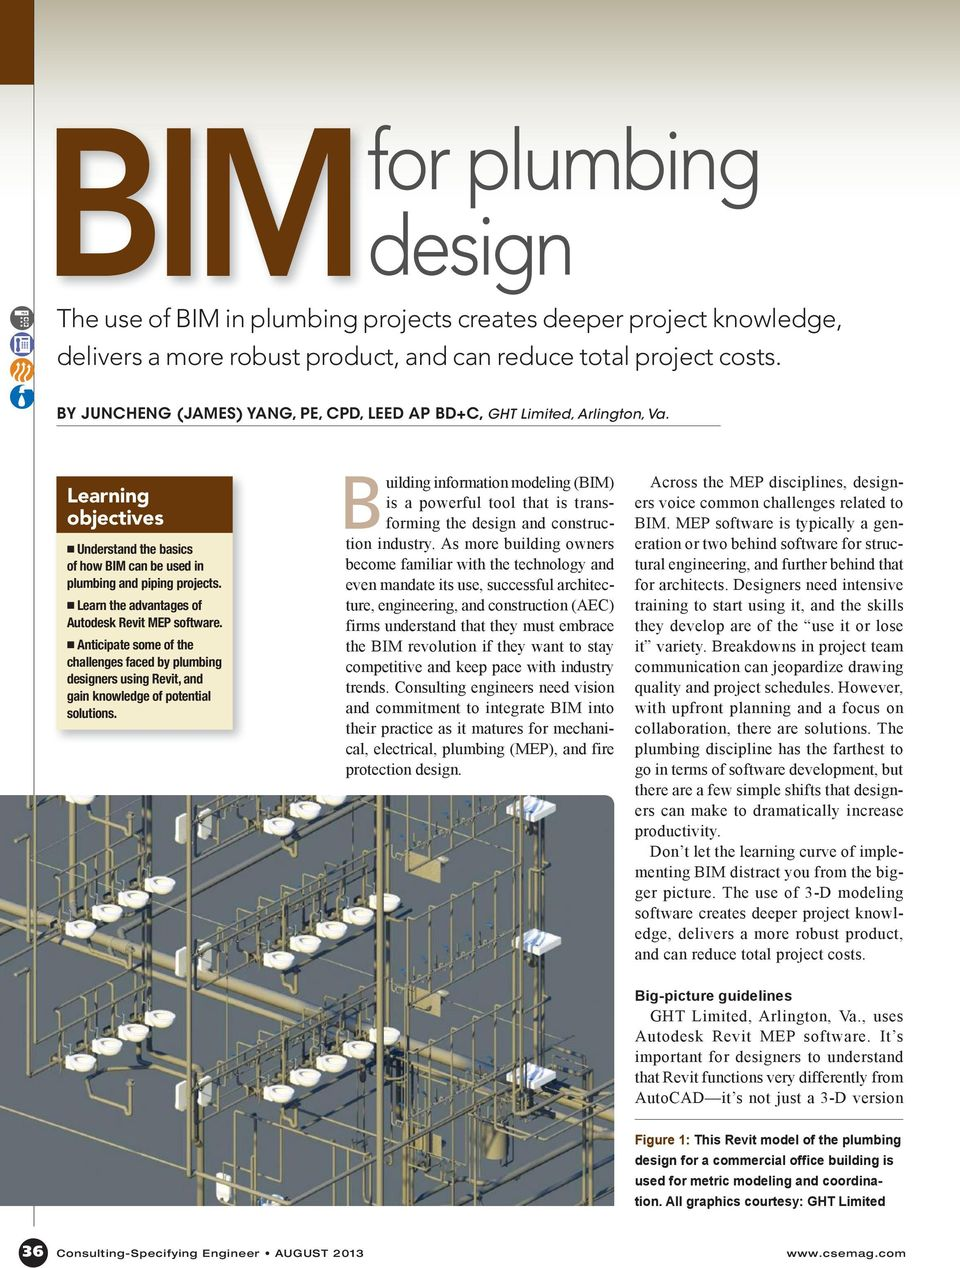 The use of BIM in plumbing projects creates deeper project